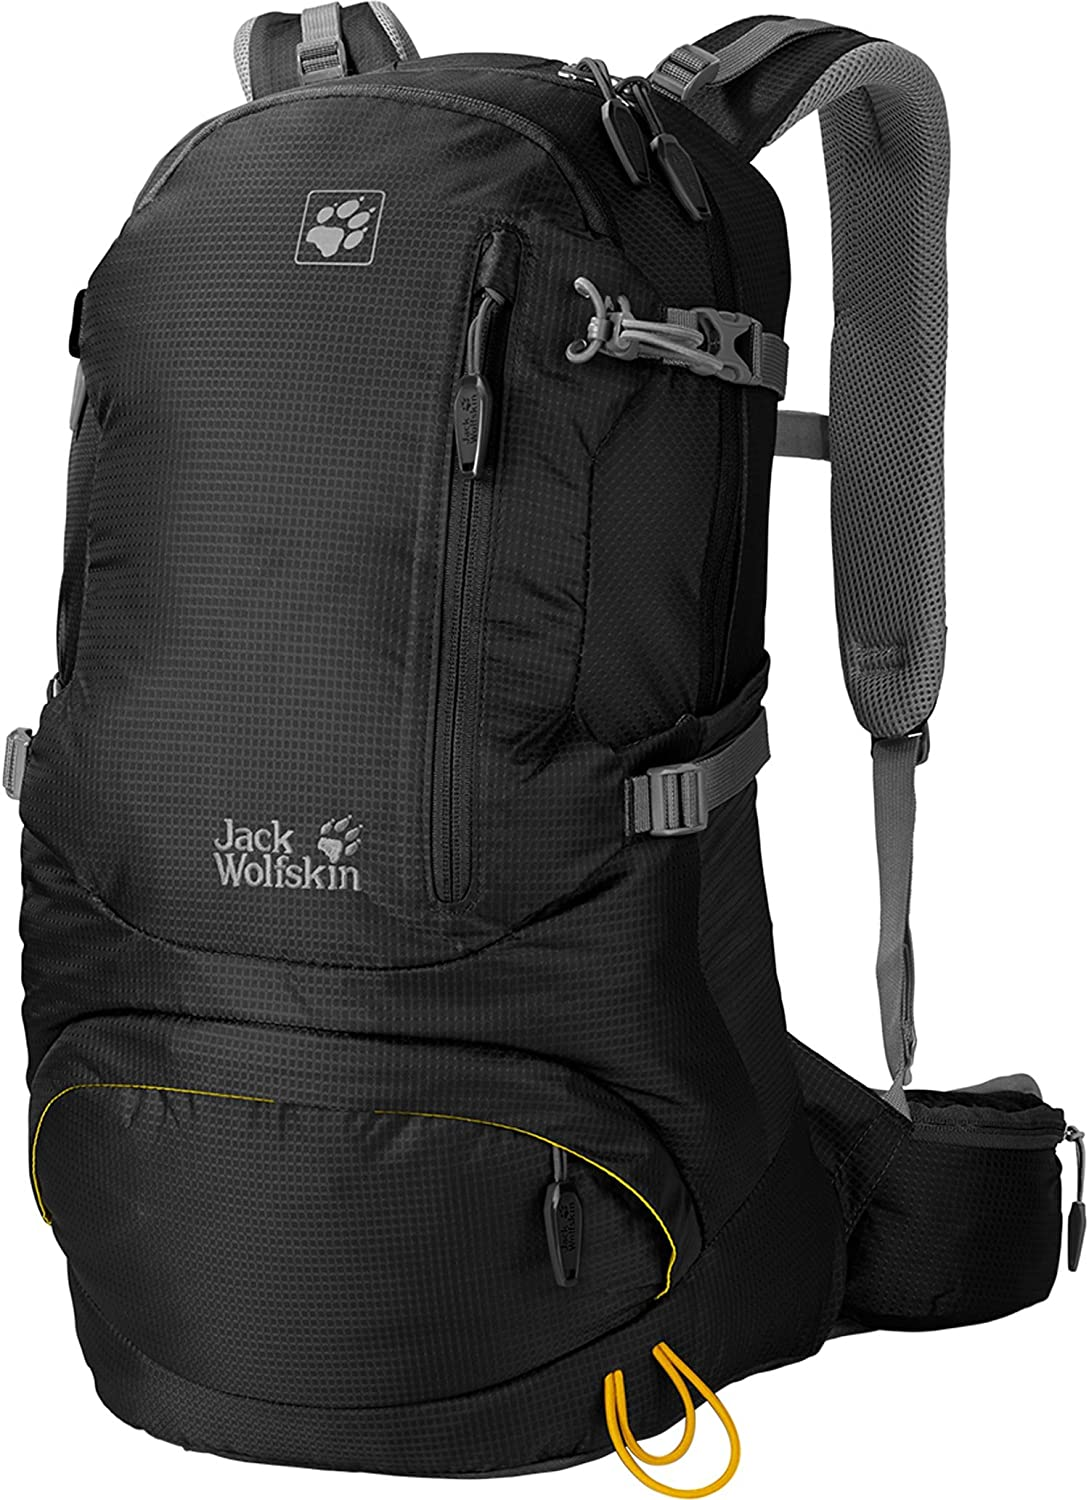 Jack Wolfskin ACS Hike Backpack (24 Liter Pack), Black, One